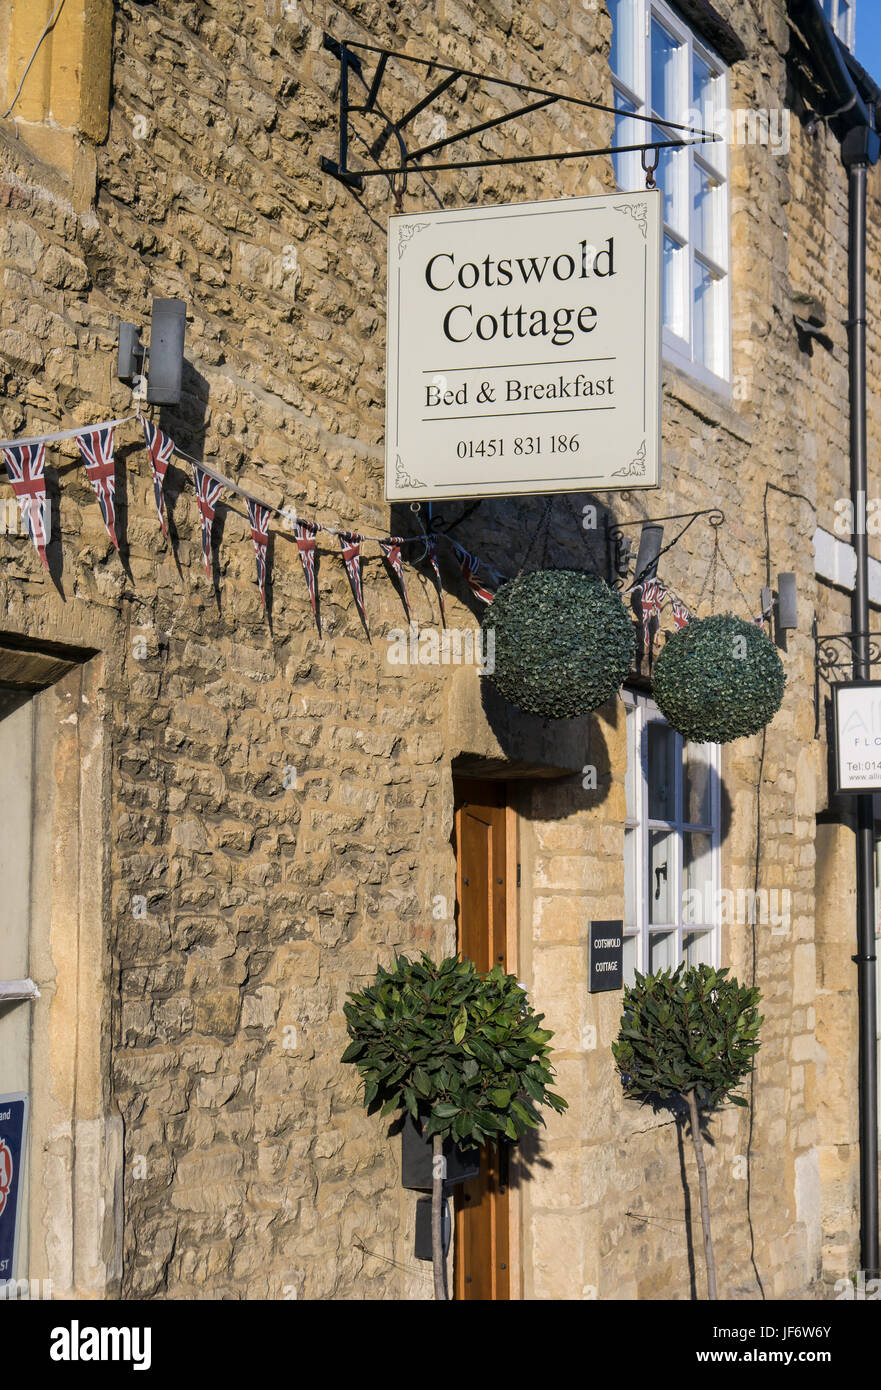 The Cotswold Cottage Bed and Breakfast in Stow Stock Photo